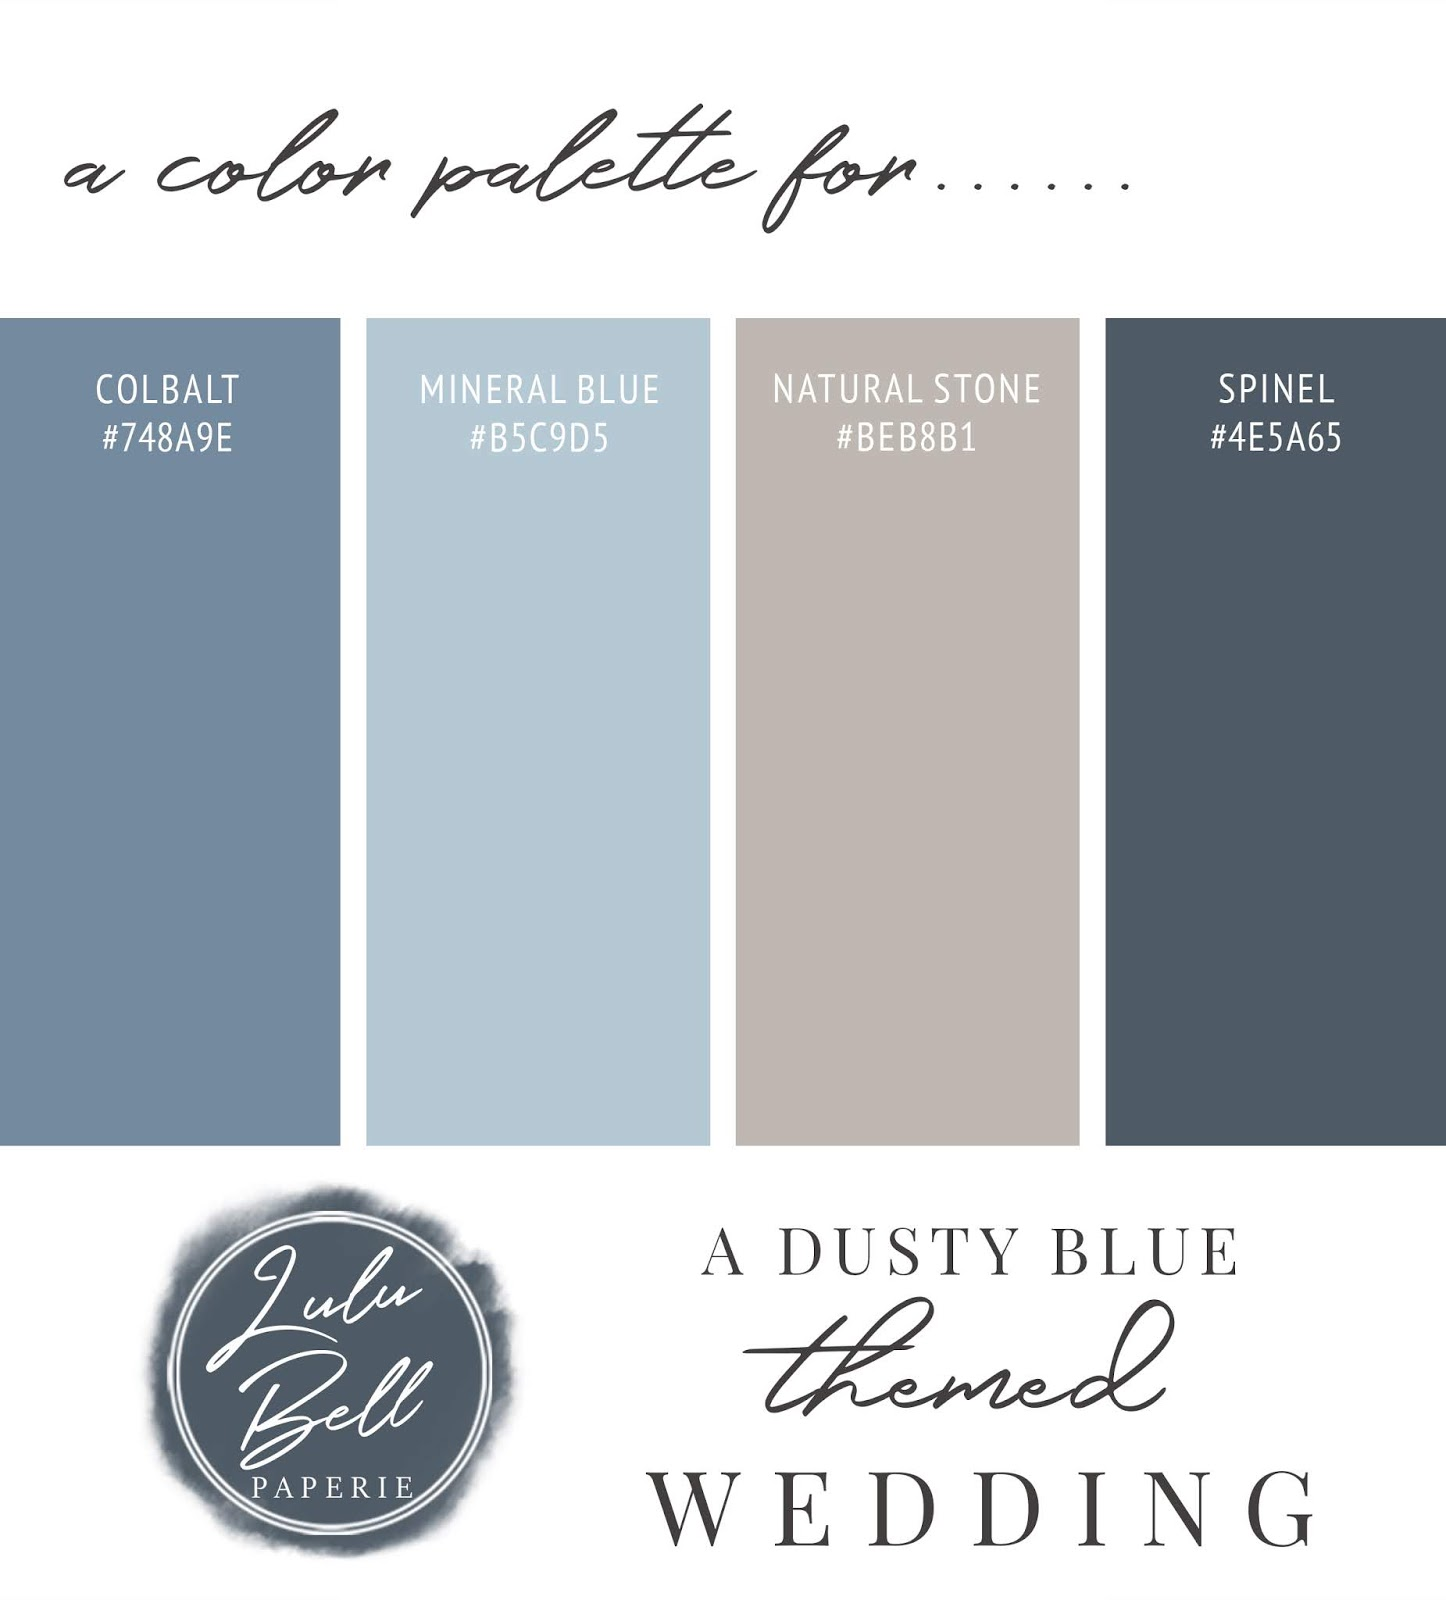 Dusty Blue Navy and Gray Wedding Color Palette Swatch Card : Cobalt, Mineral Blue, Natural Stone, and Spinel Blue